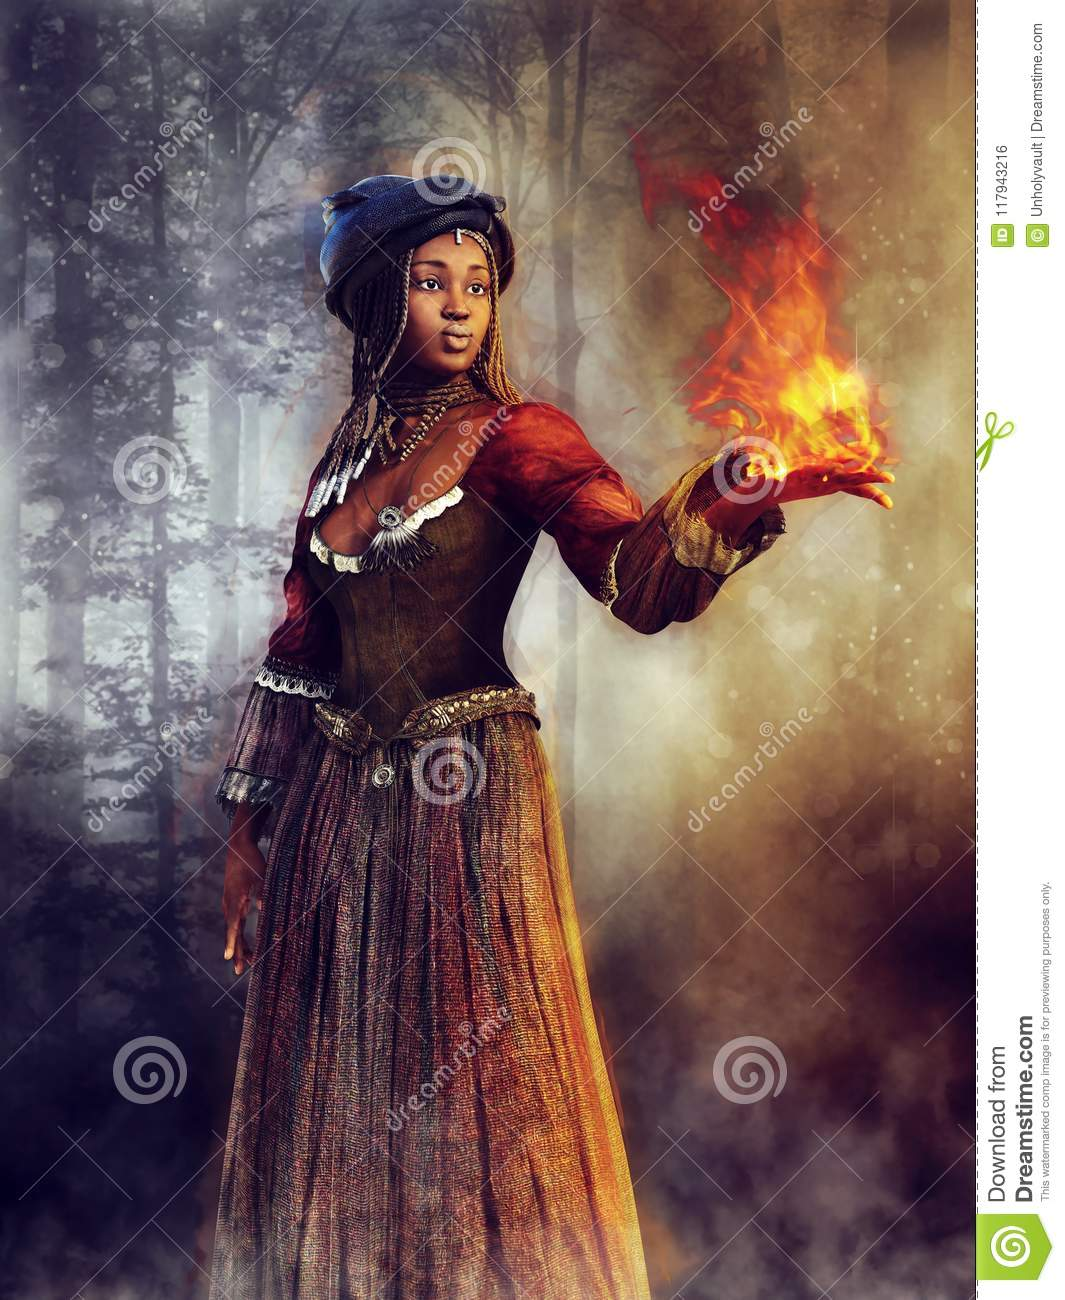 Voodoo sorceress with a flame